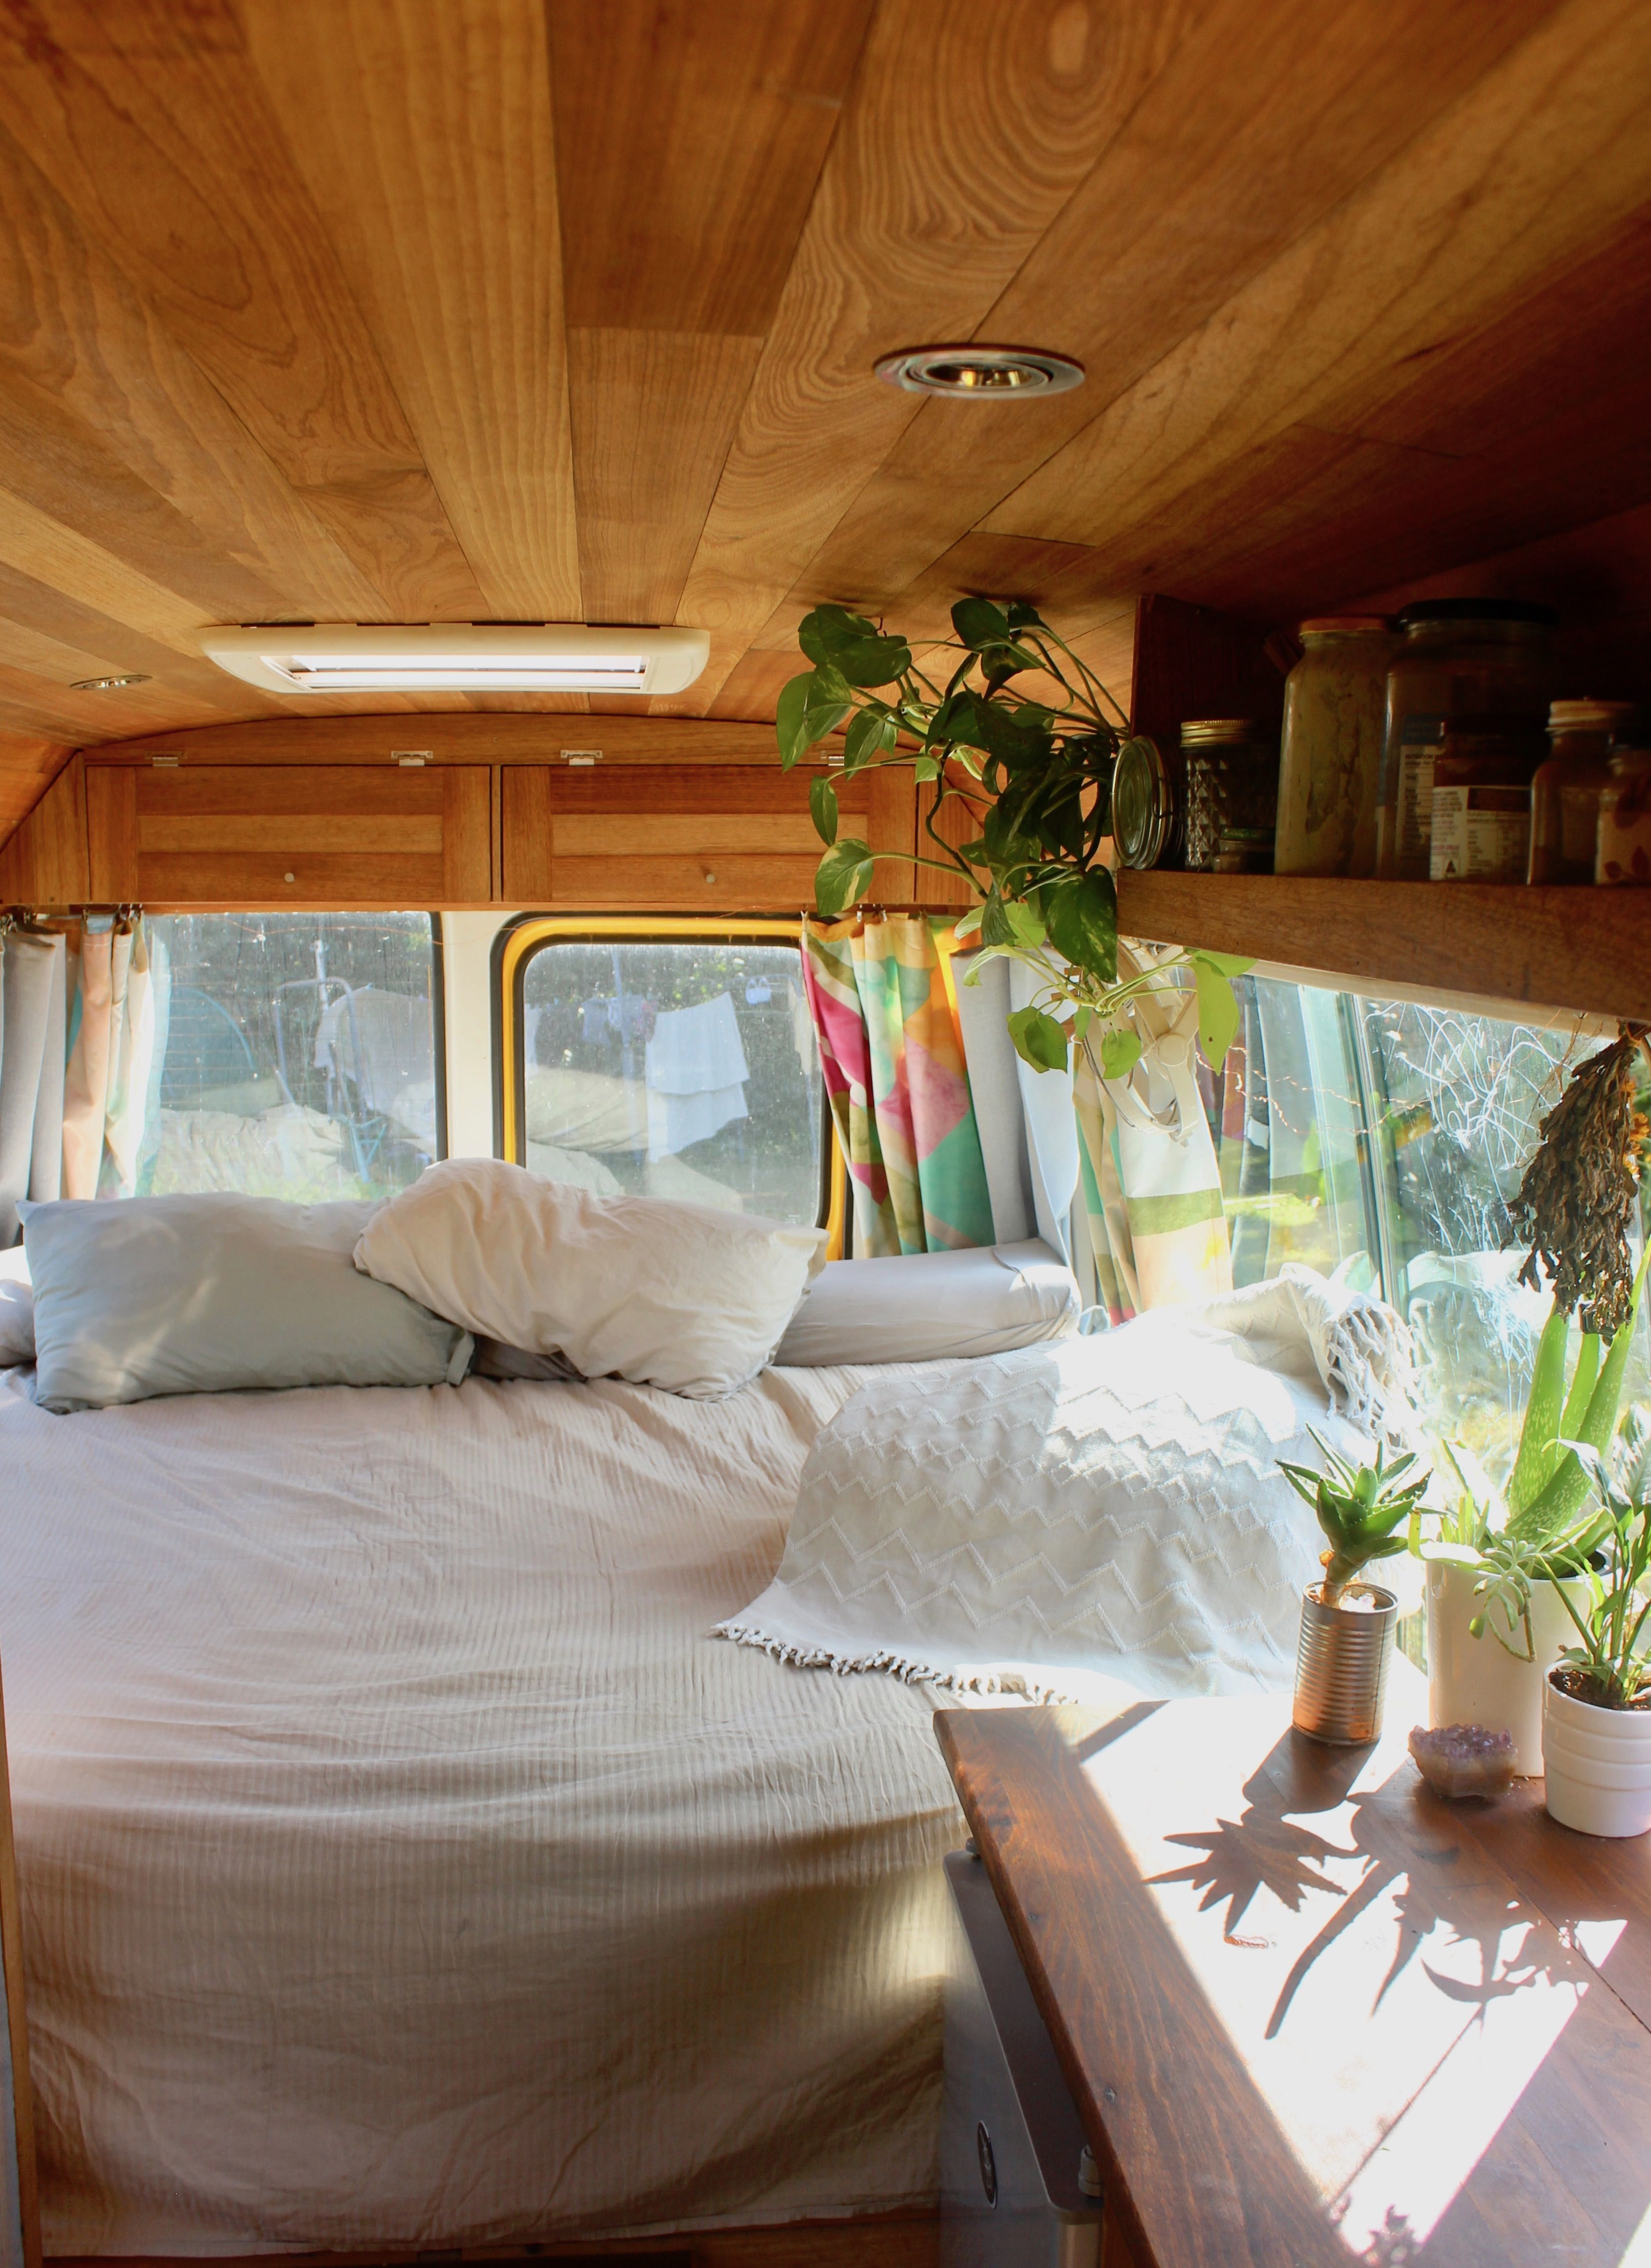 These Tiny Houses On Wheels Are Serious Small Space Inspo